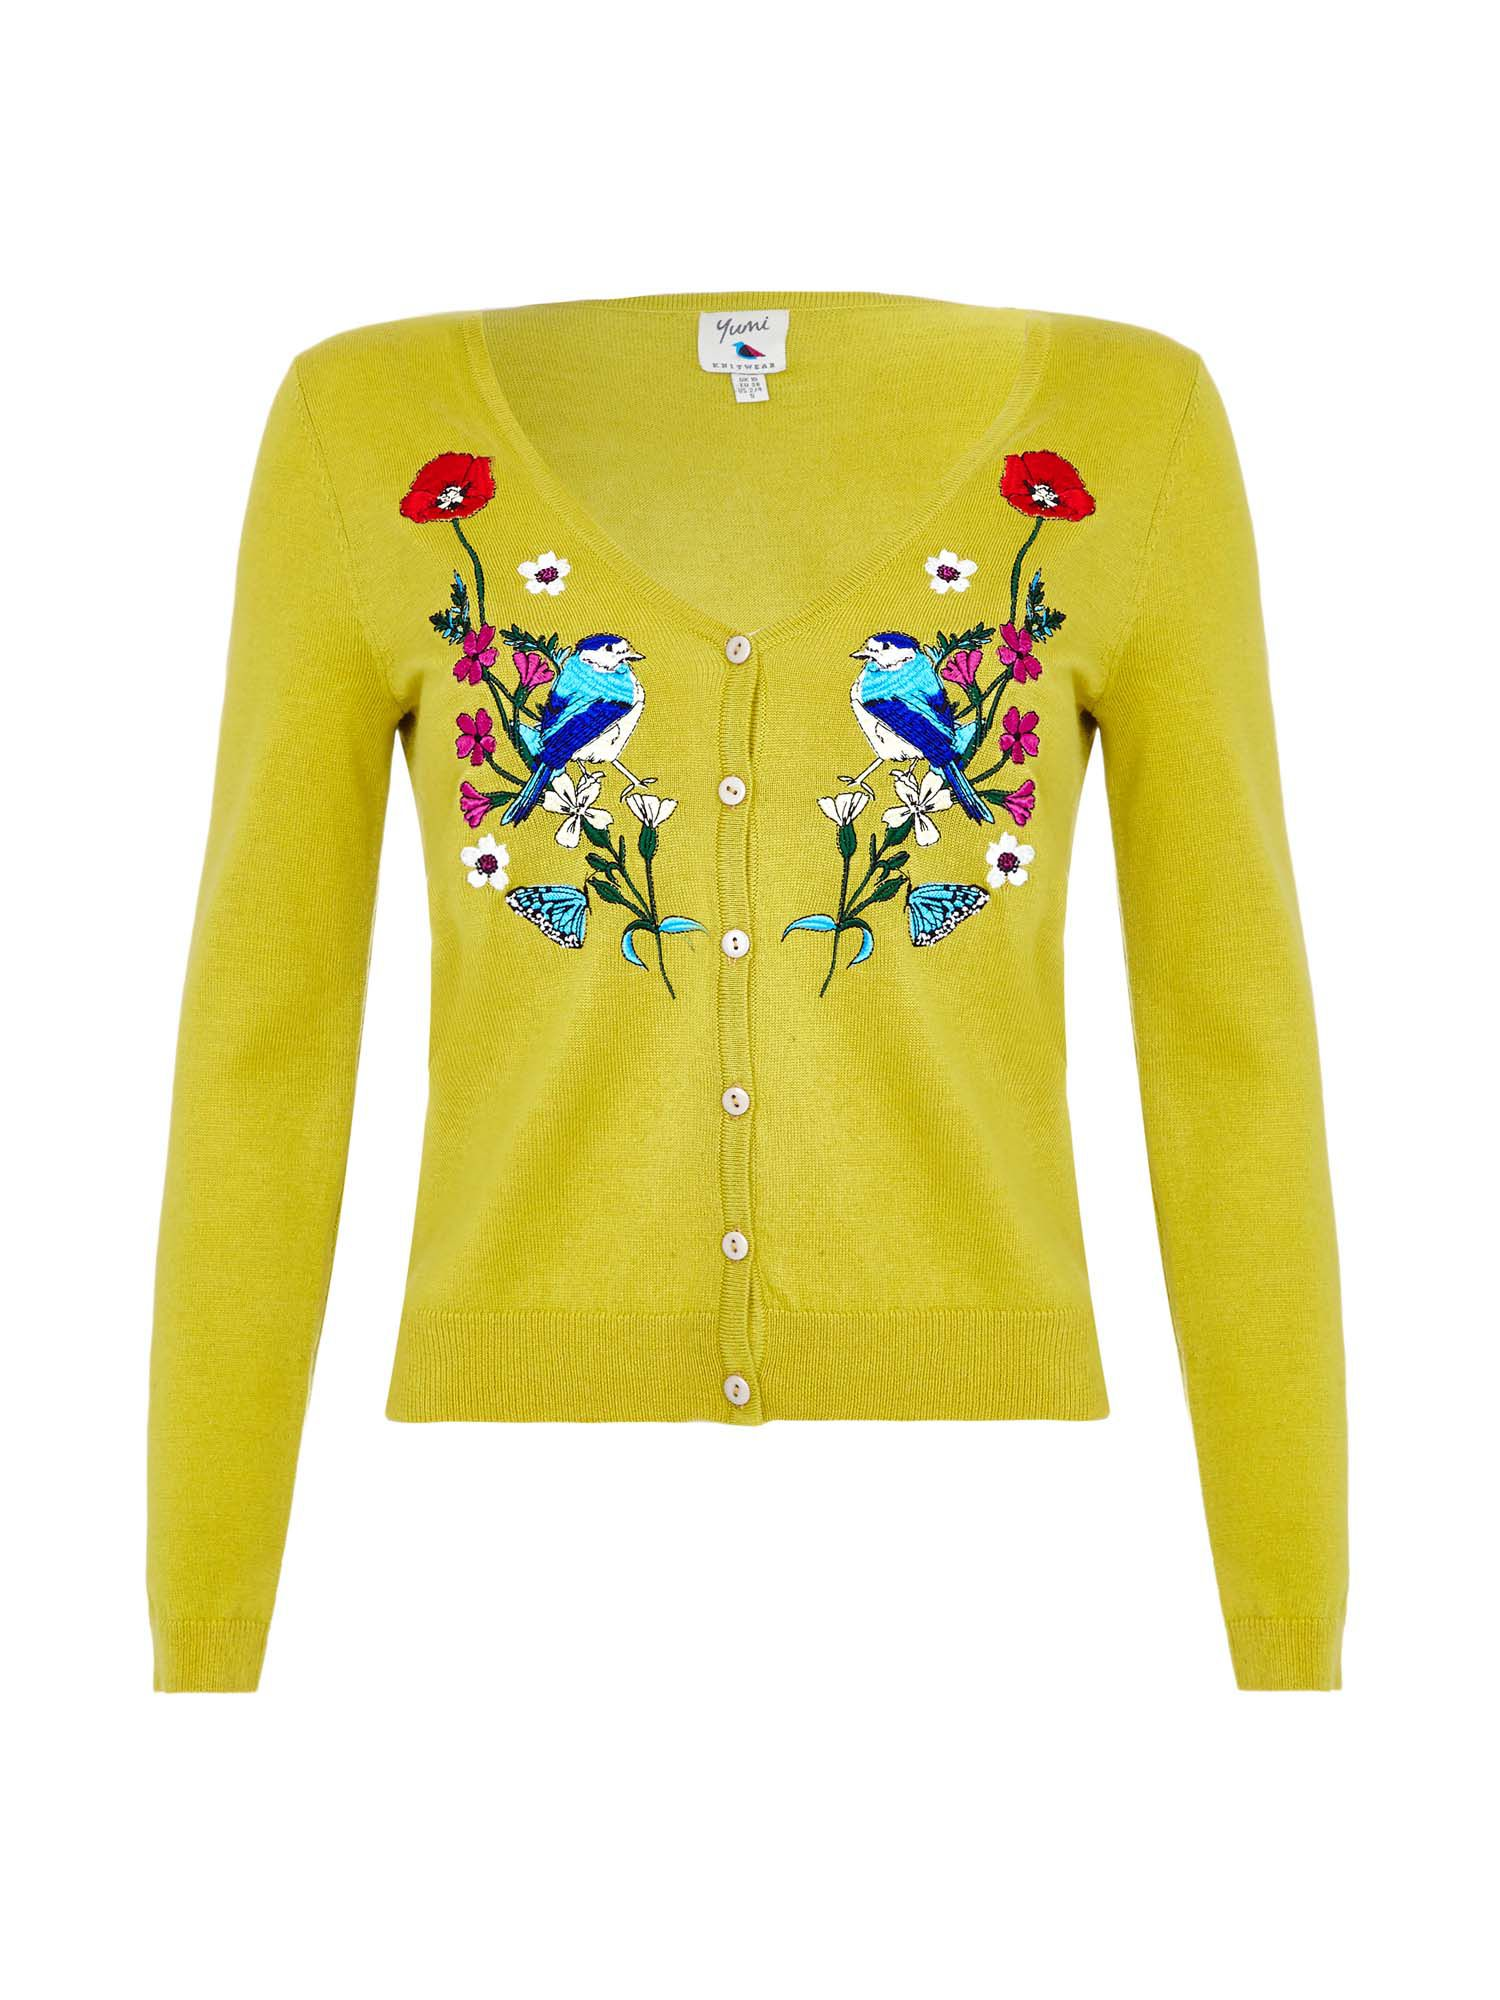 1950s Style Sweaters, Crop Cardigans, Twin Sets Yumi Floral Bird Embroidered Cardigan Yellow £60.00 AT vintagedancer.com